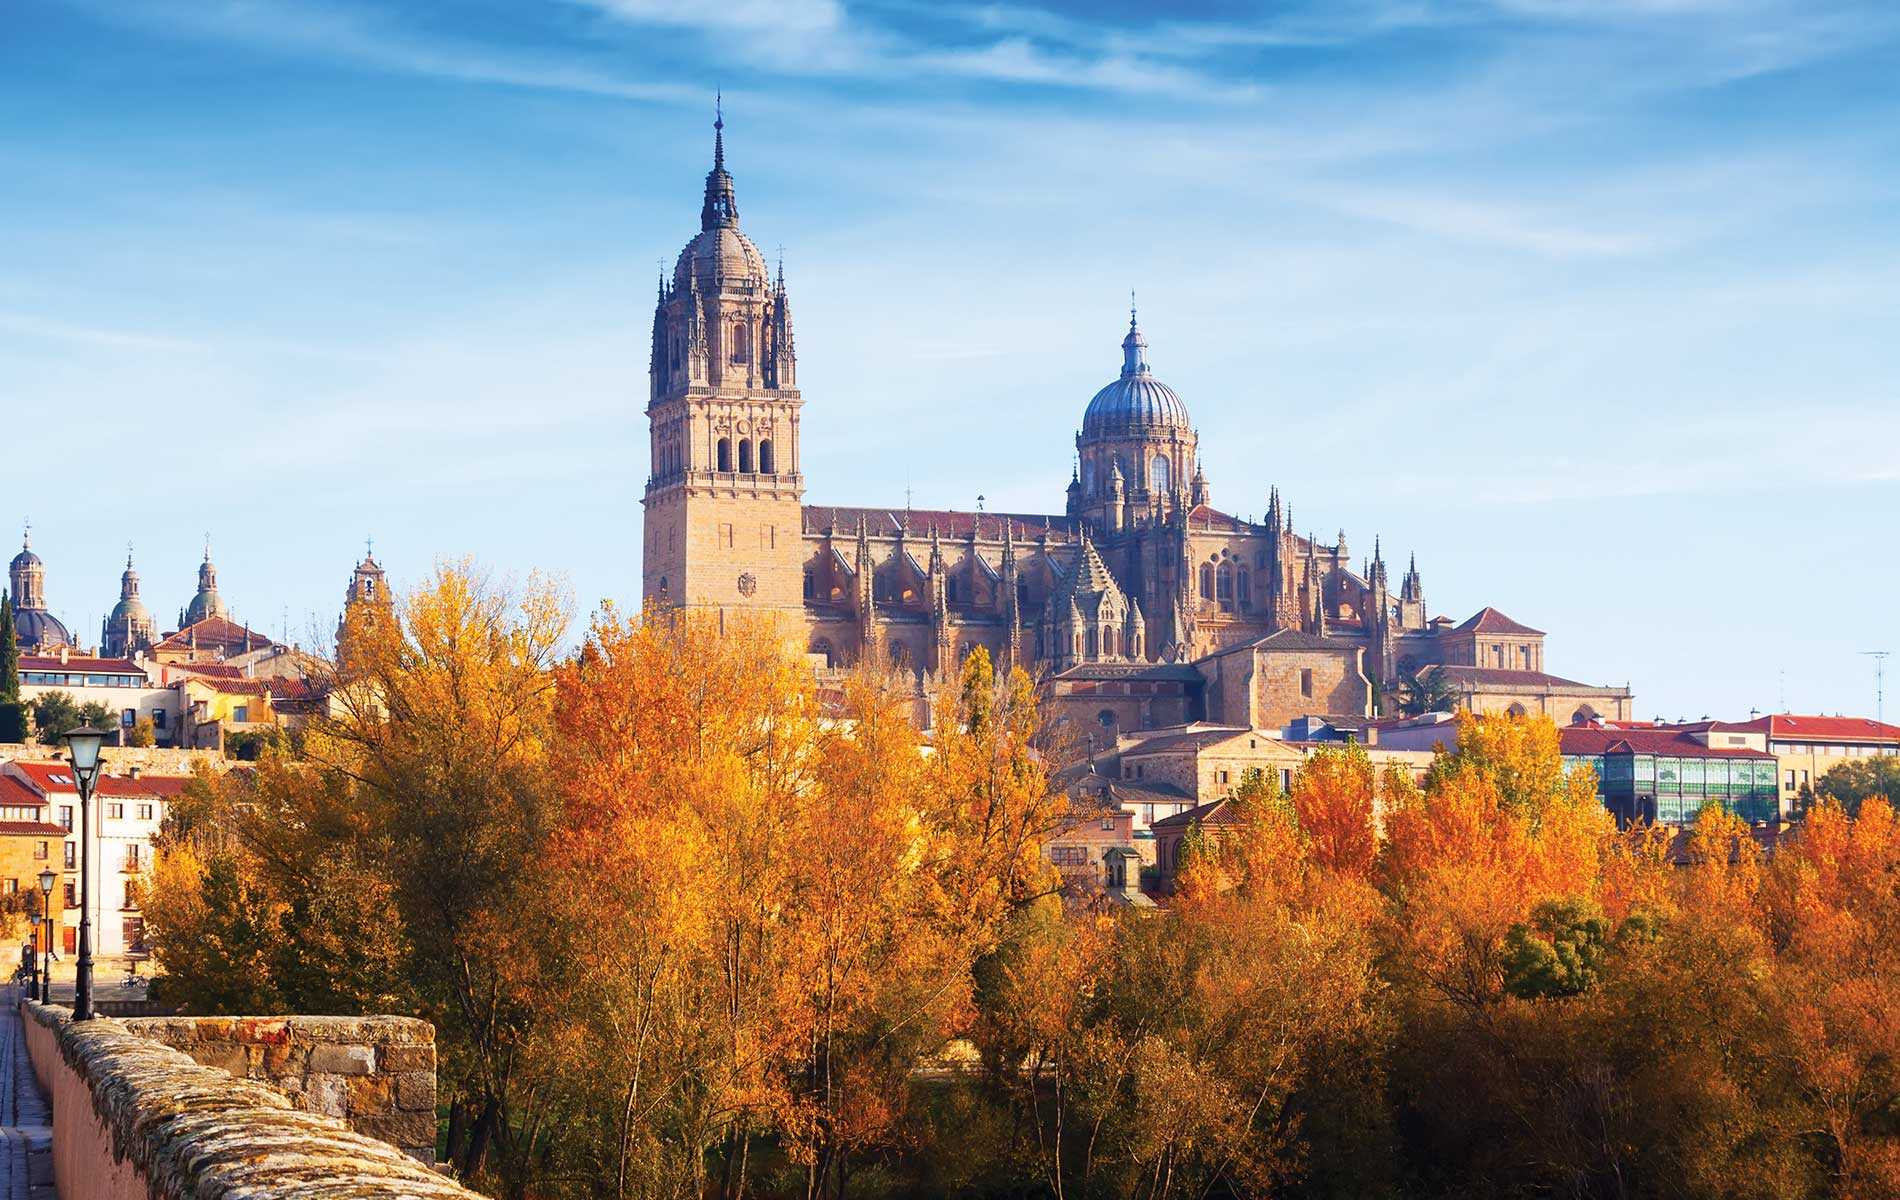 A lovely autumn view of the Tormes River and the New Cathedral in Salamanca, Spain